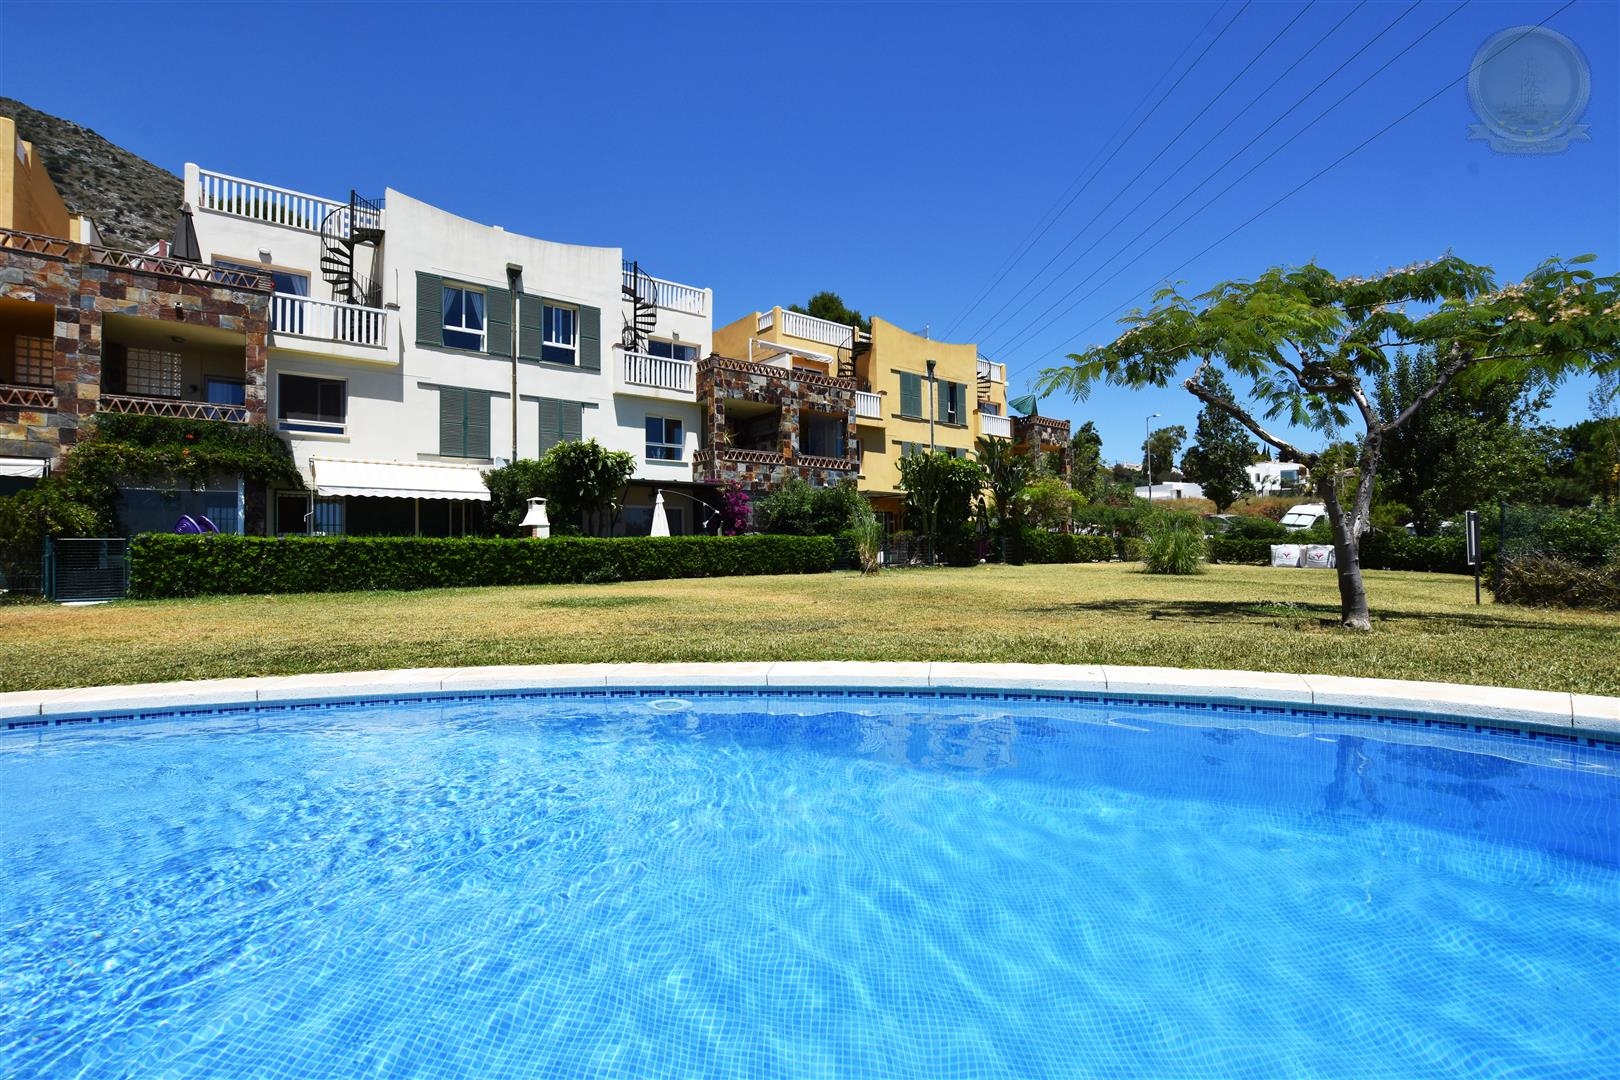 Apartment for Sale in Higueron community pool